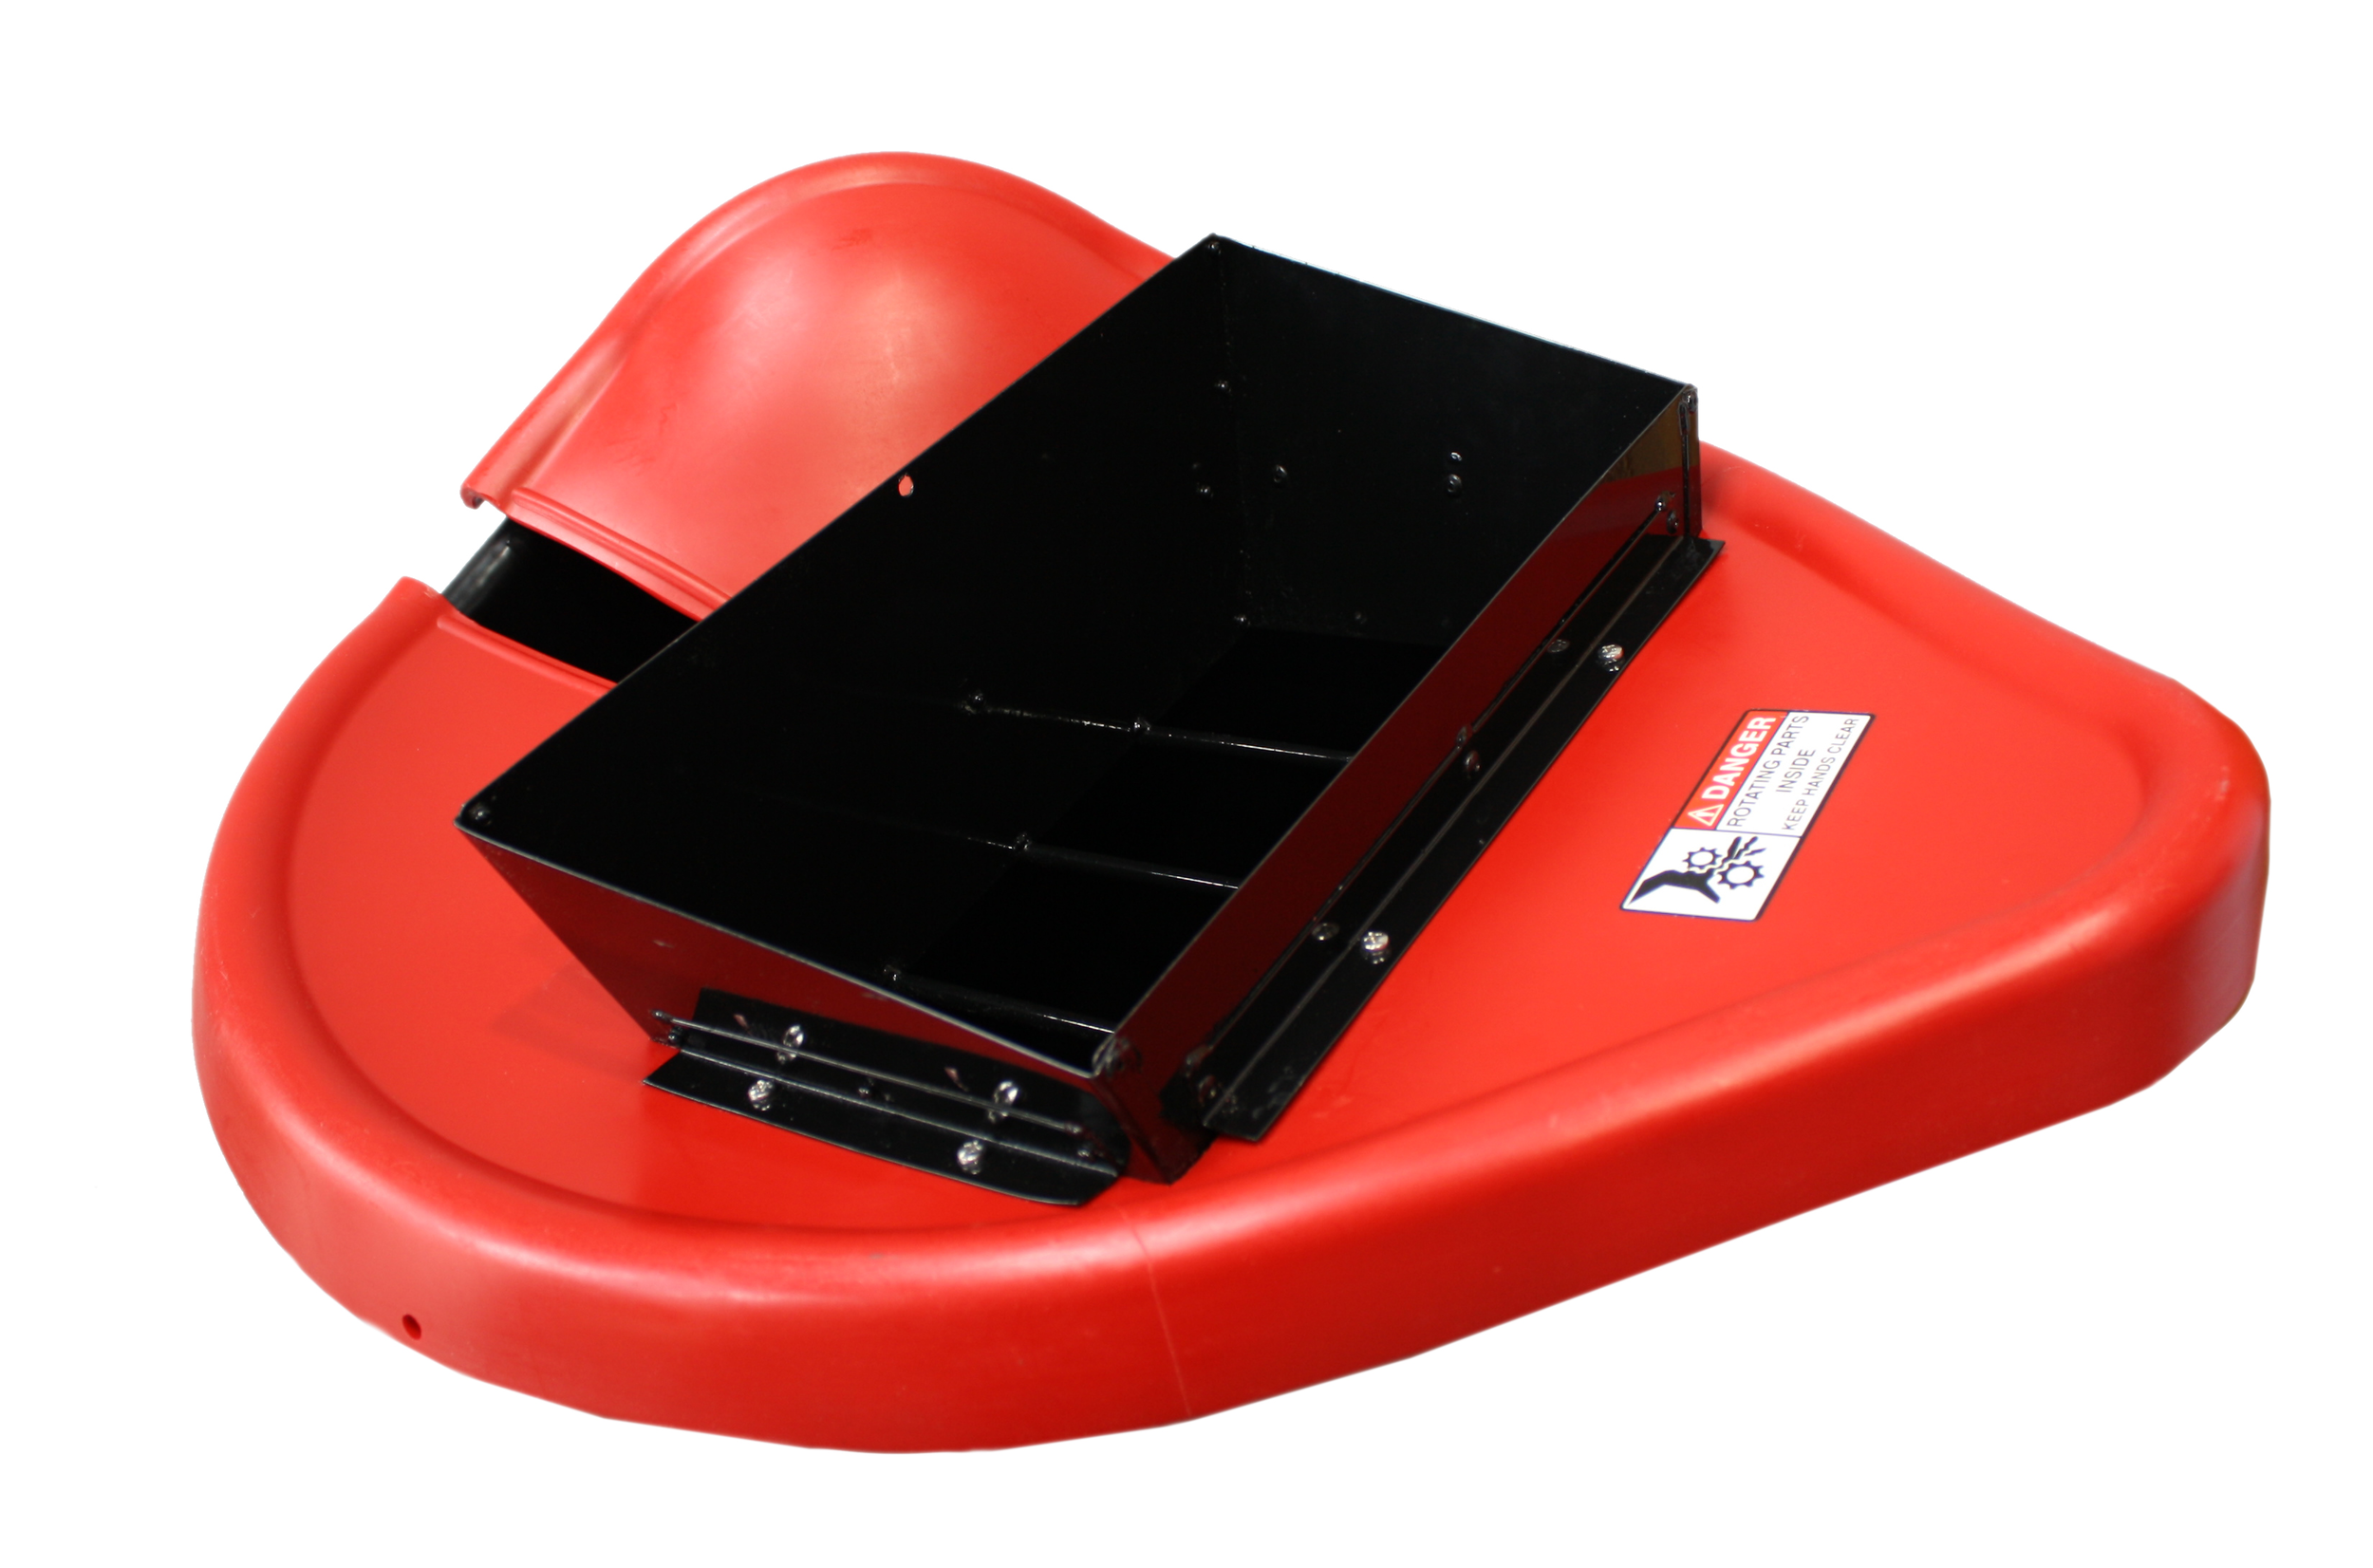 PH723 Chute Lid   Allows dry material to be added without opening the lid. Improve dust control and personal safety.